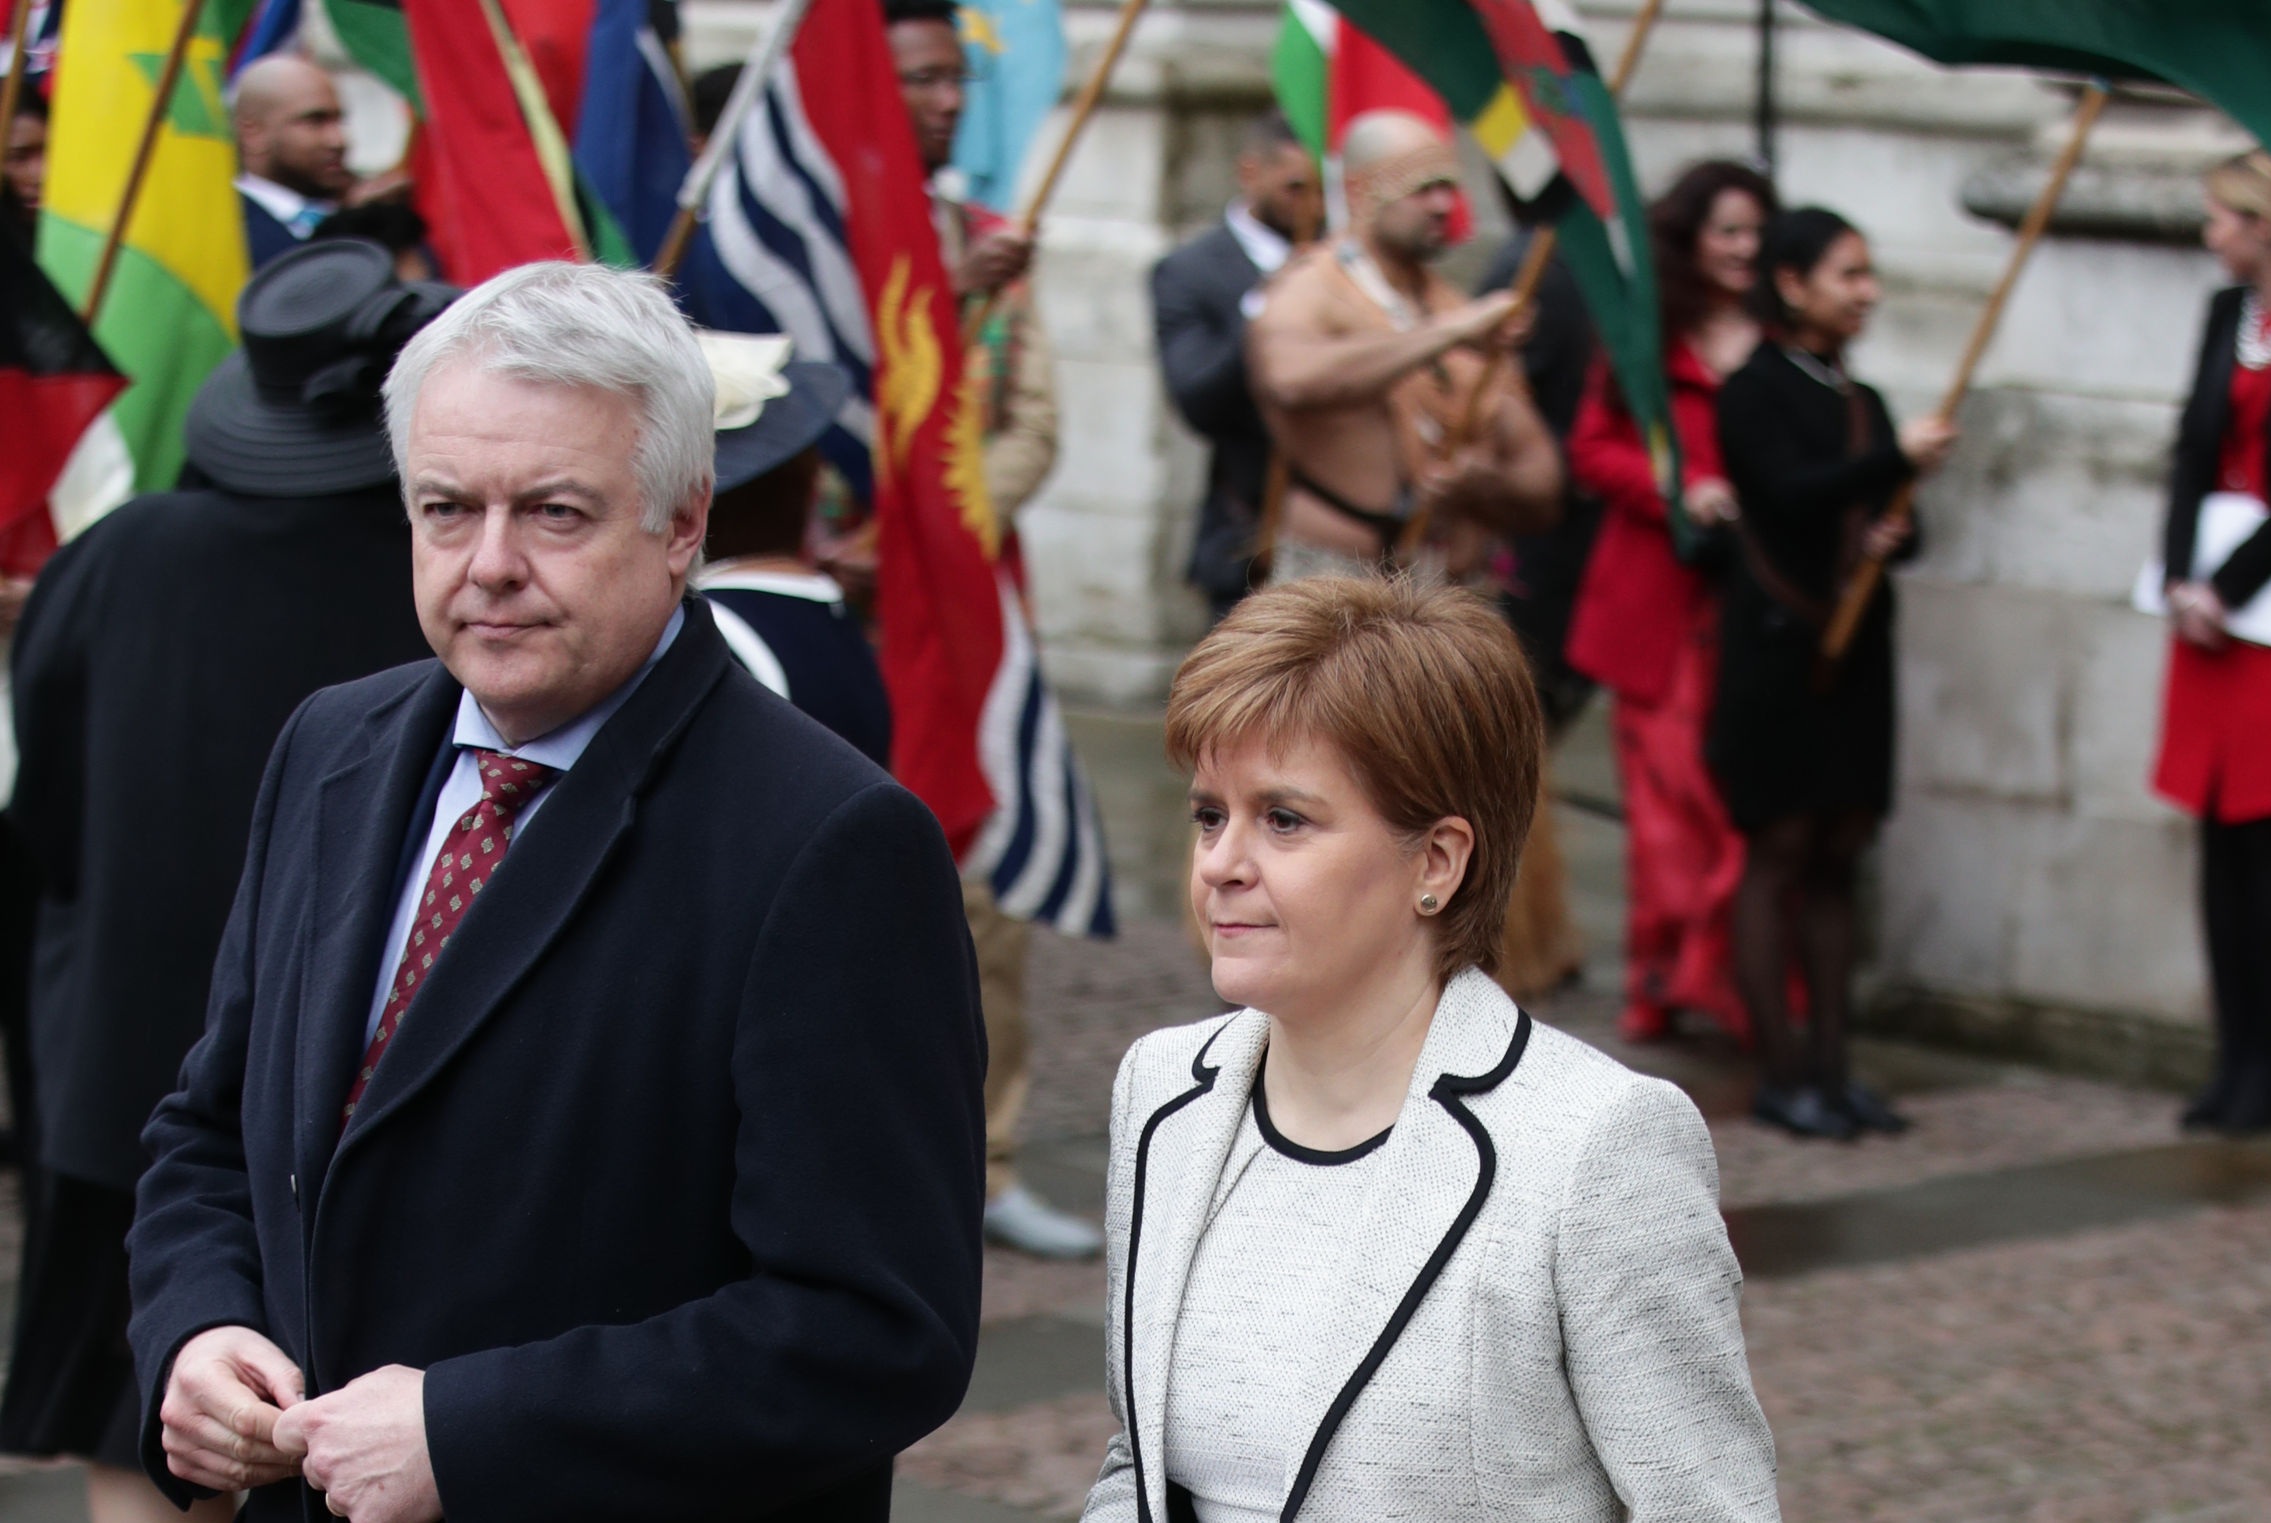 Nicola Sturgeon and her Welsh counterpart Carwyn Jones will meet with the Prime Minister at the Joint Ministerial Committee